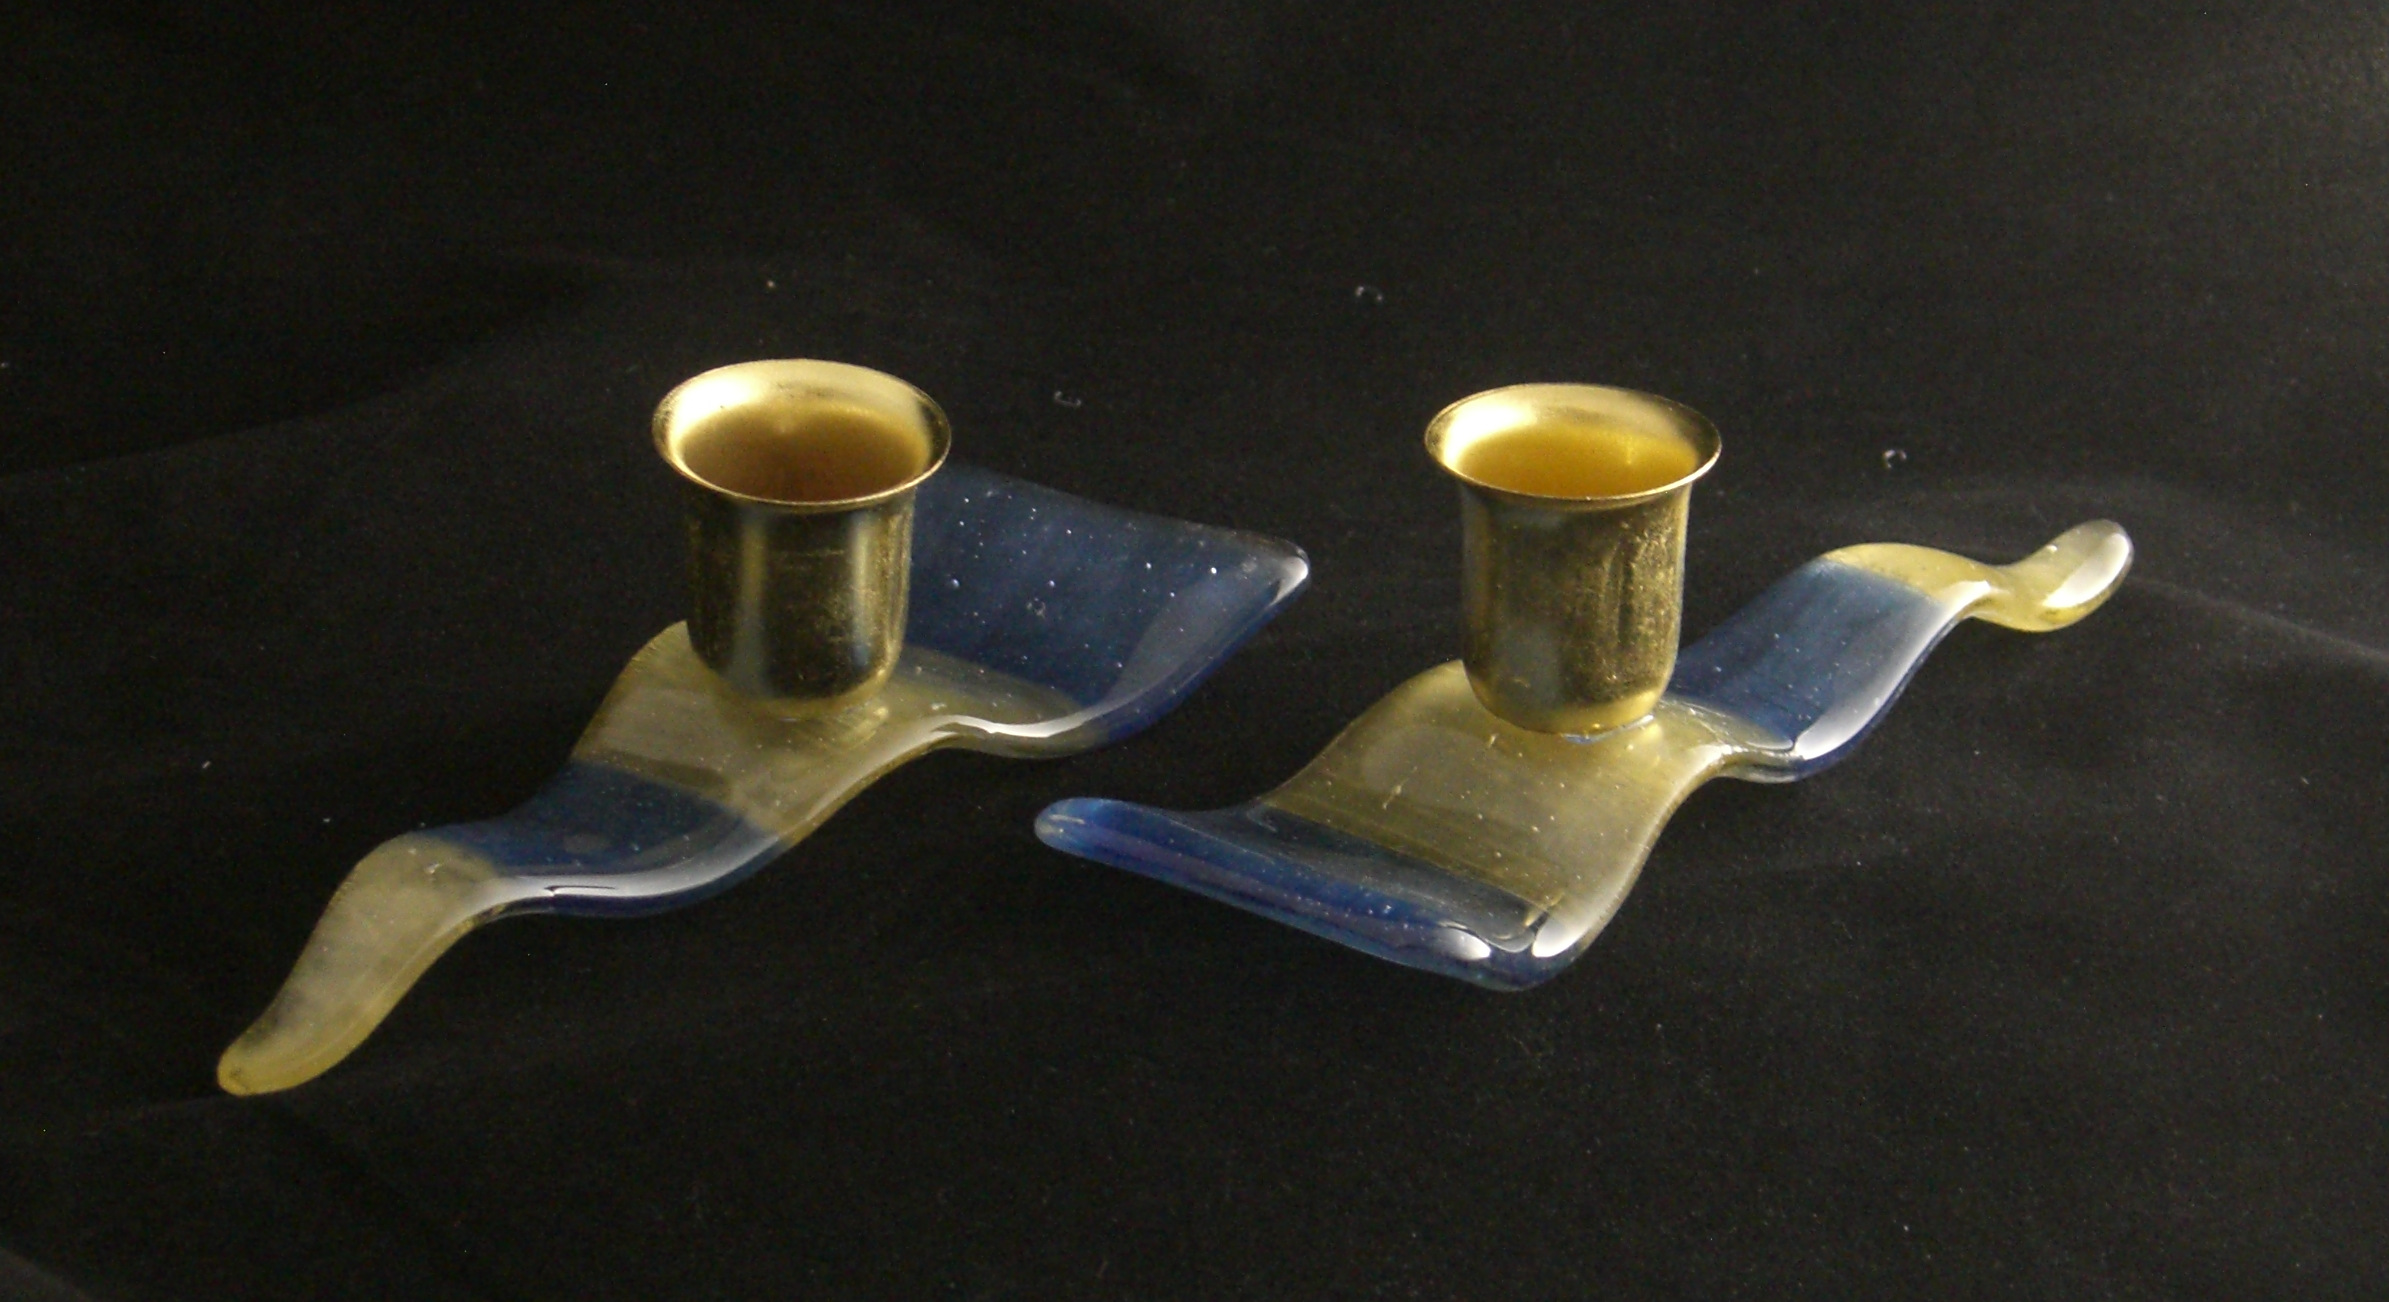 Shabbat waves of blue and gold candlesticks